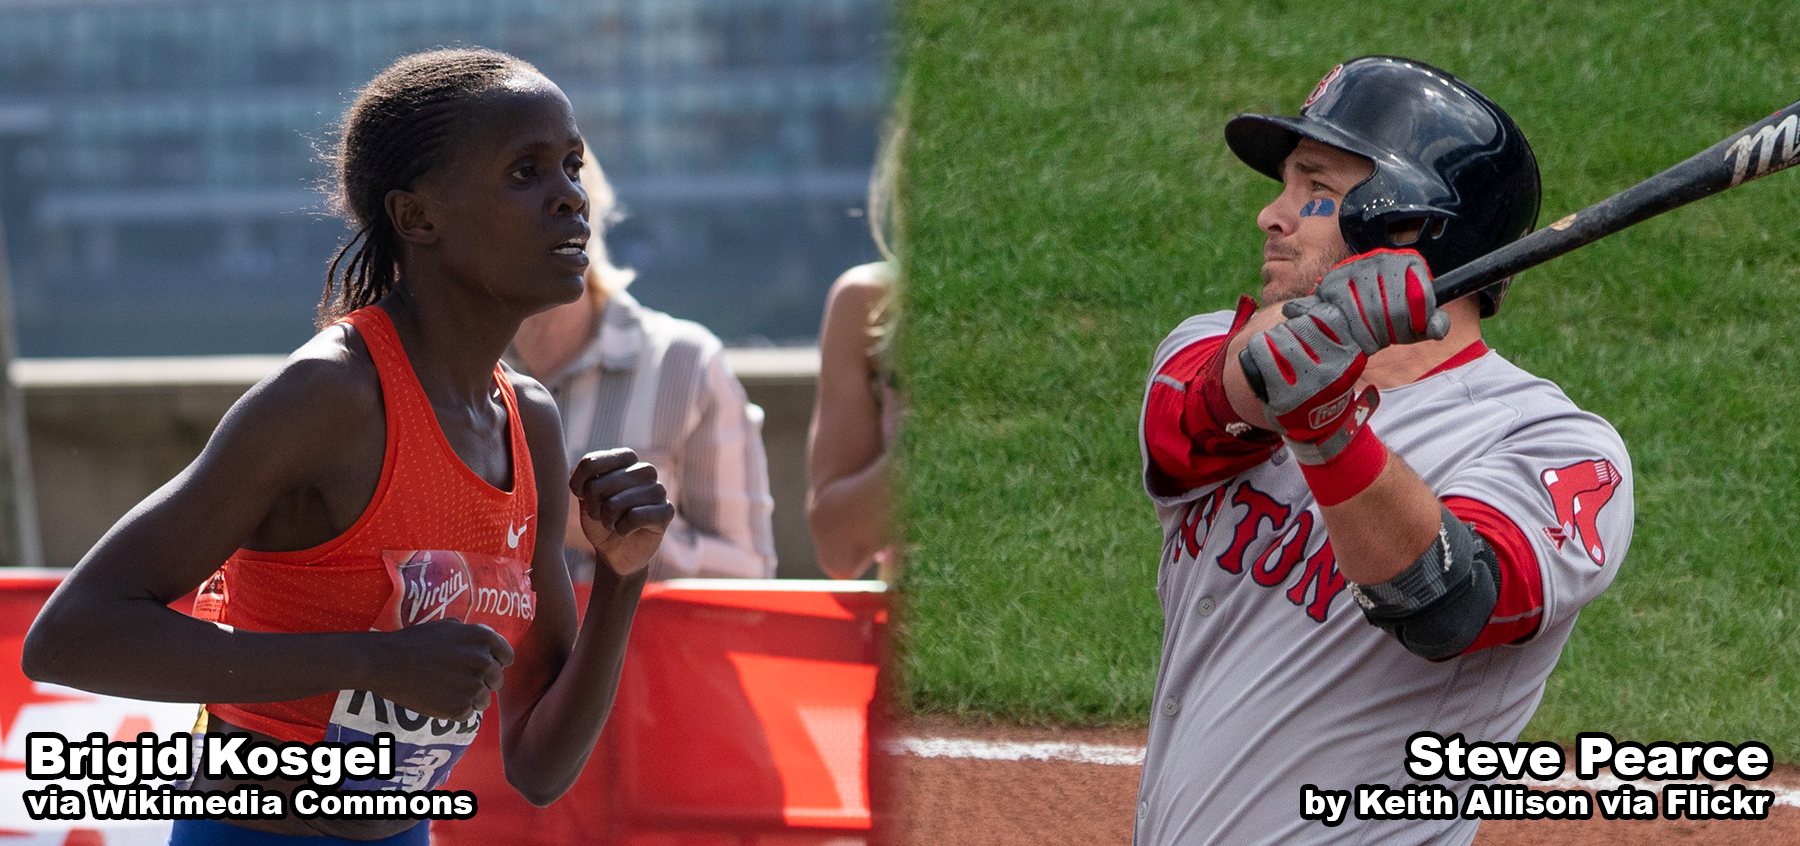 Steve Pearce and Brigid Kosgei